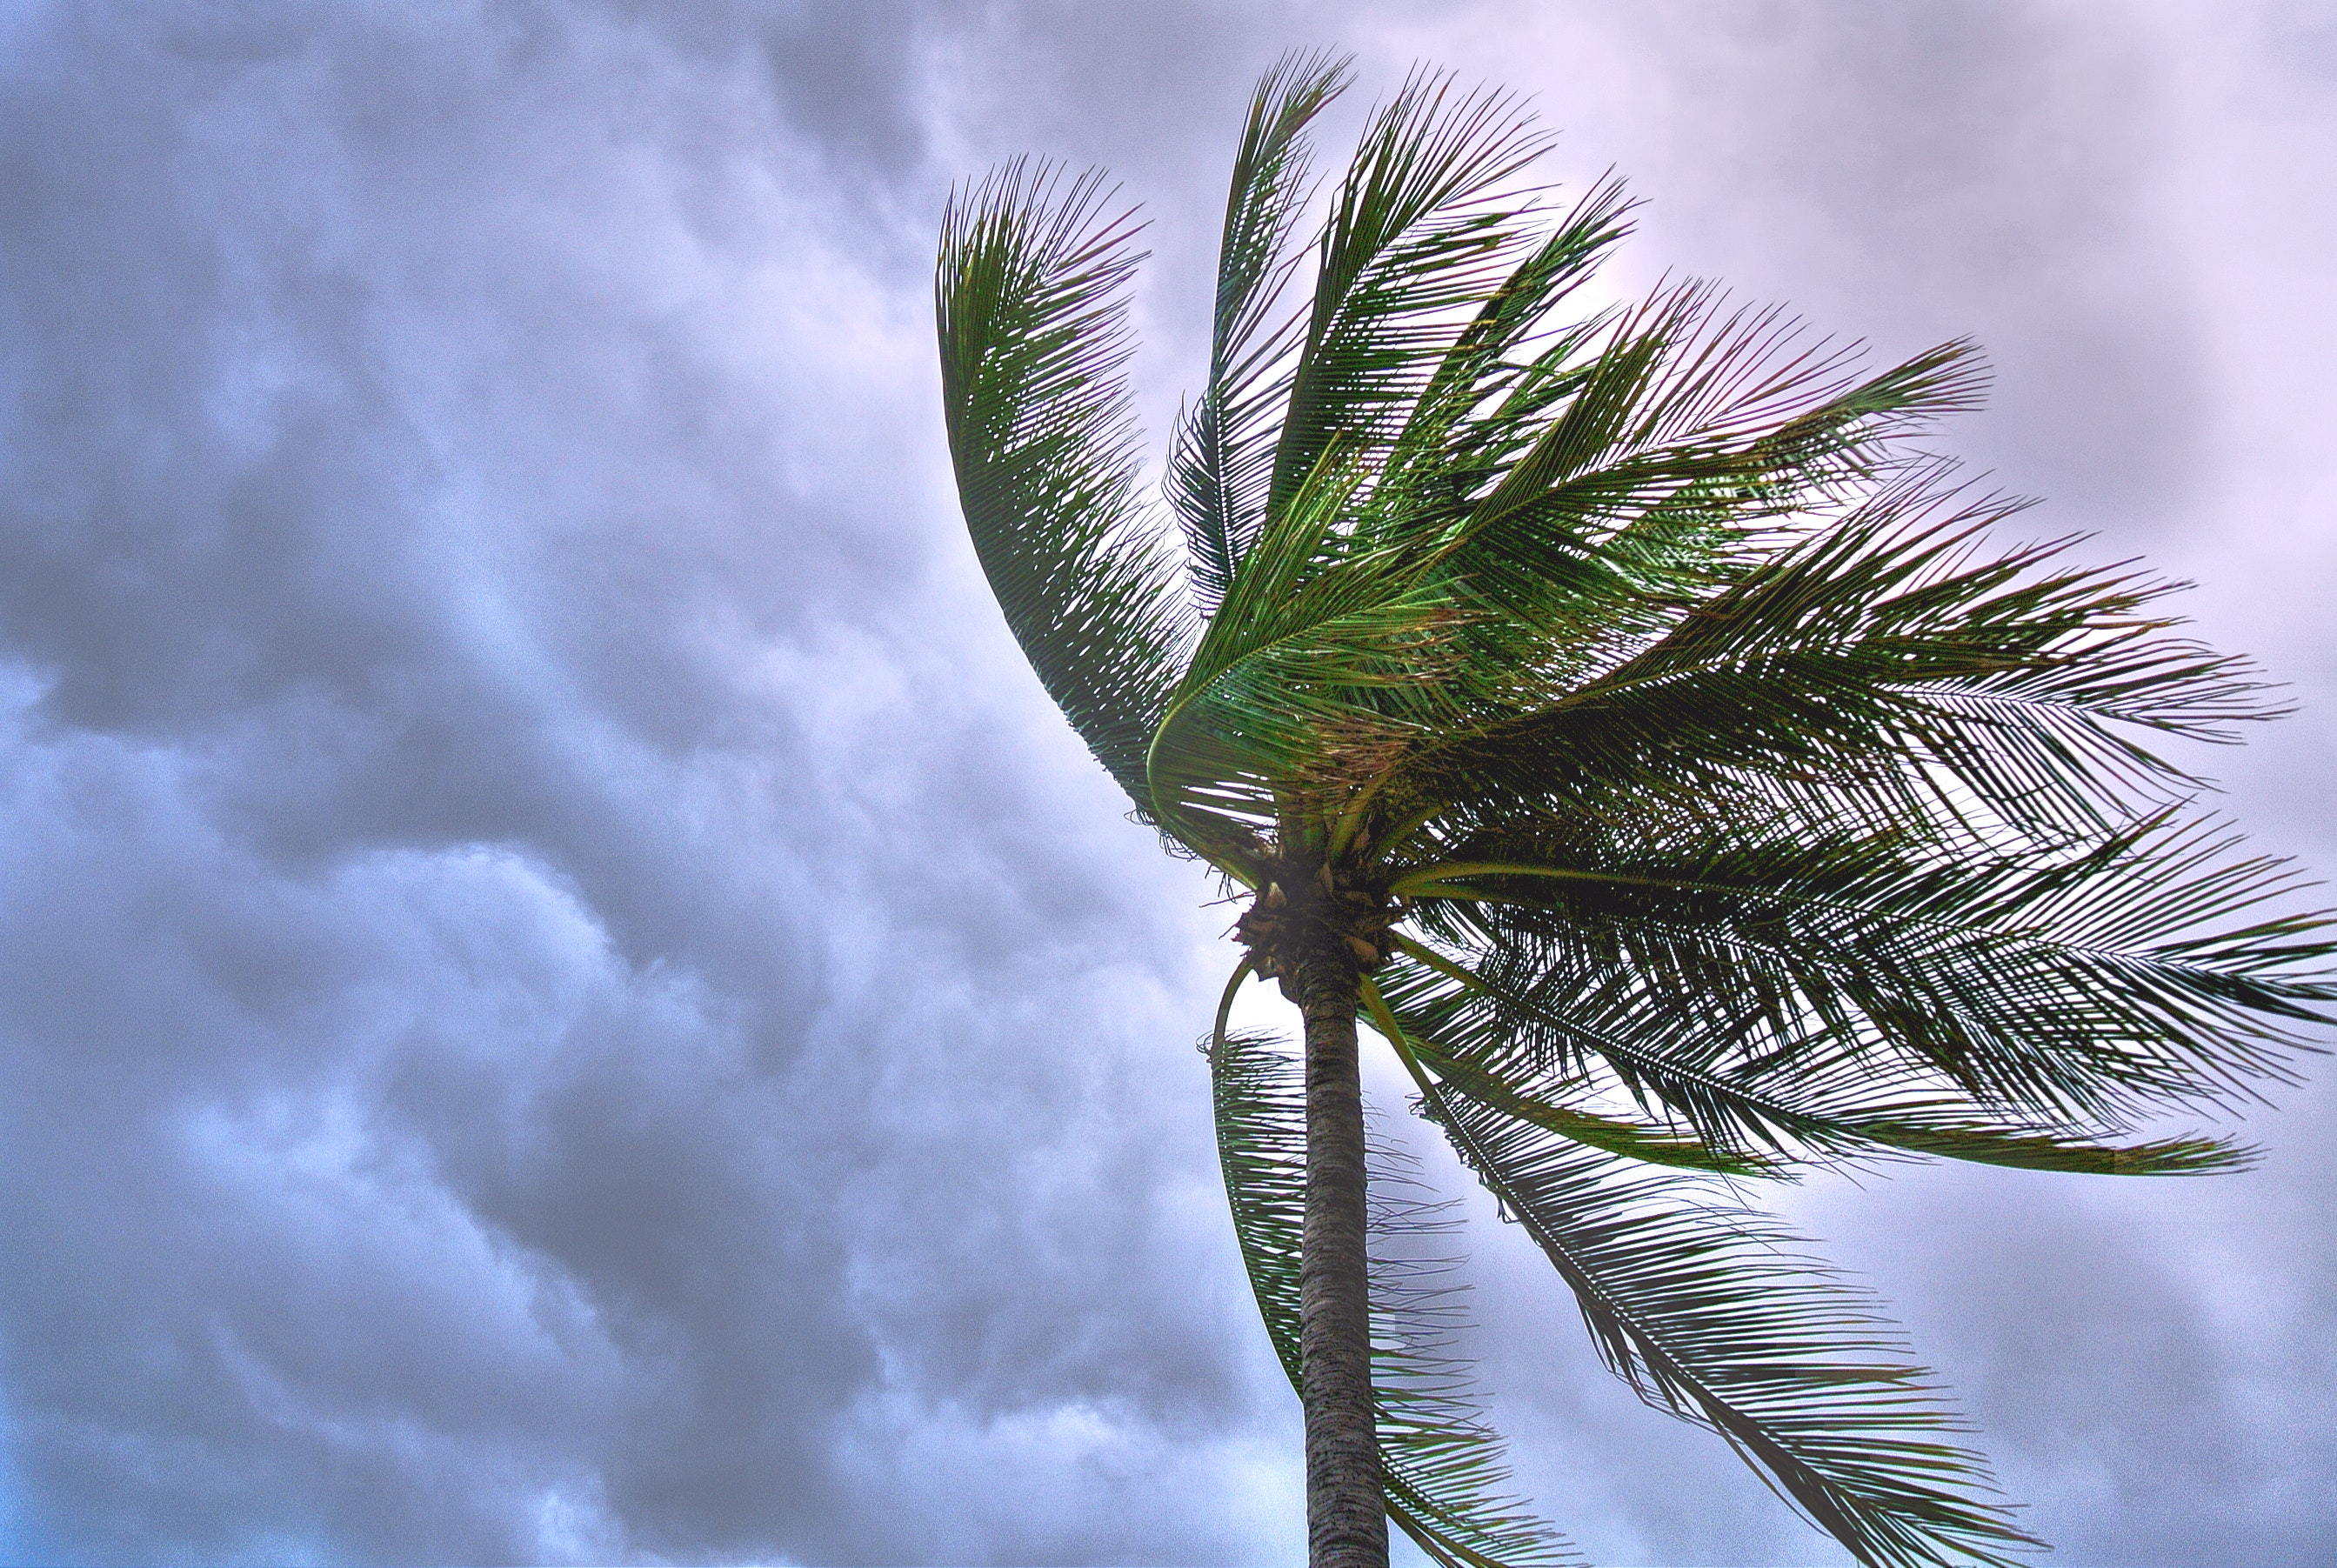 Palm ree blowing in the wind of an approaching storm